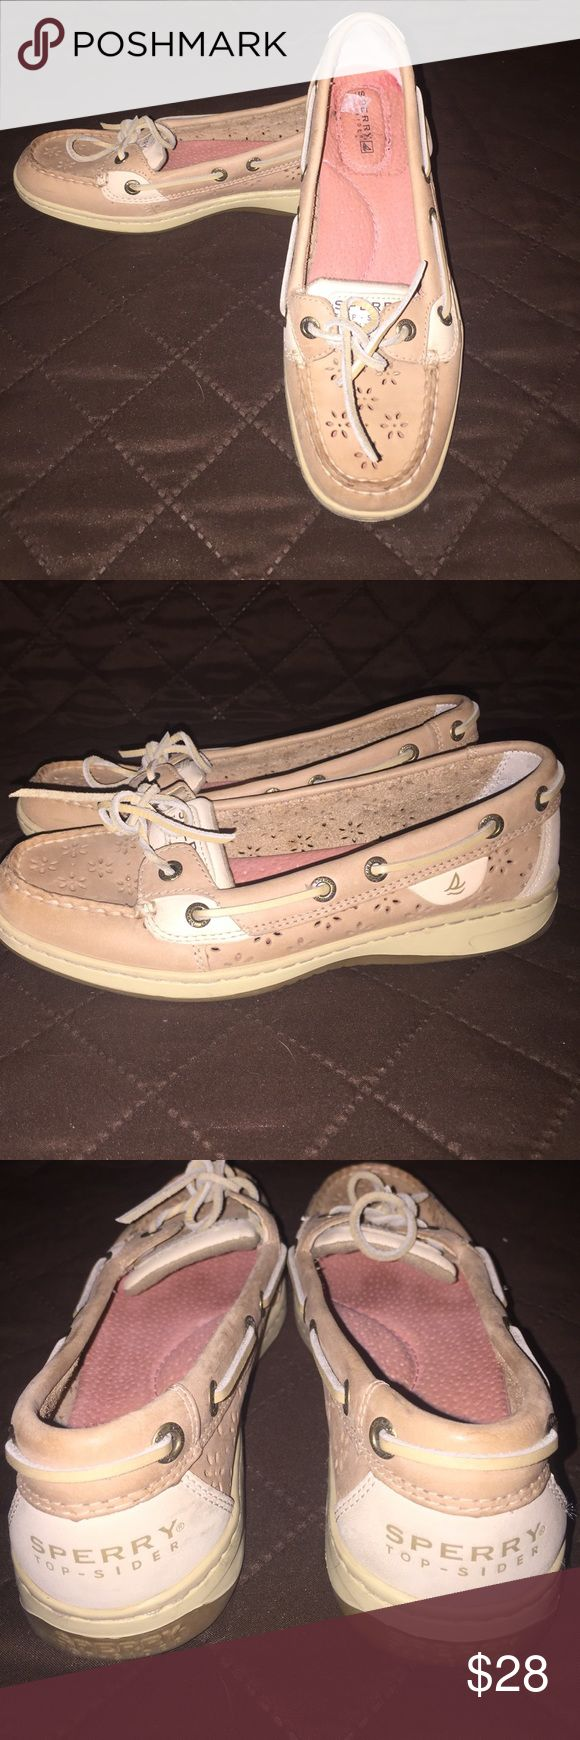 Pre-owned Women's Sperry shoes Tan/cream women's Sperry Top-Spider shoes Sperry Top-Sider Shoes Flats & Loafers